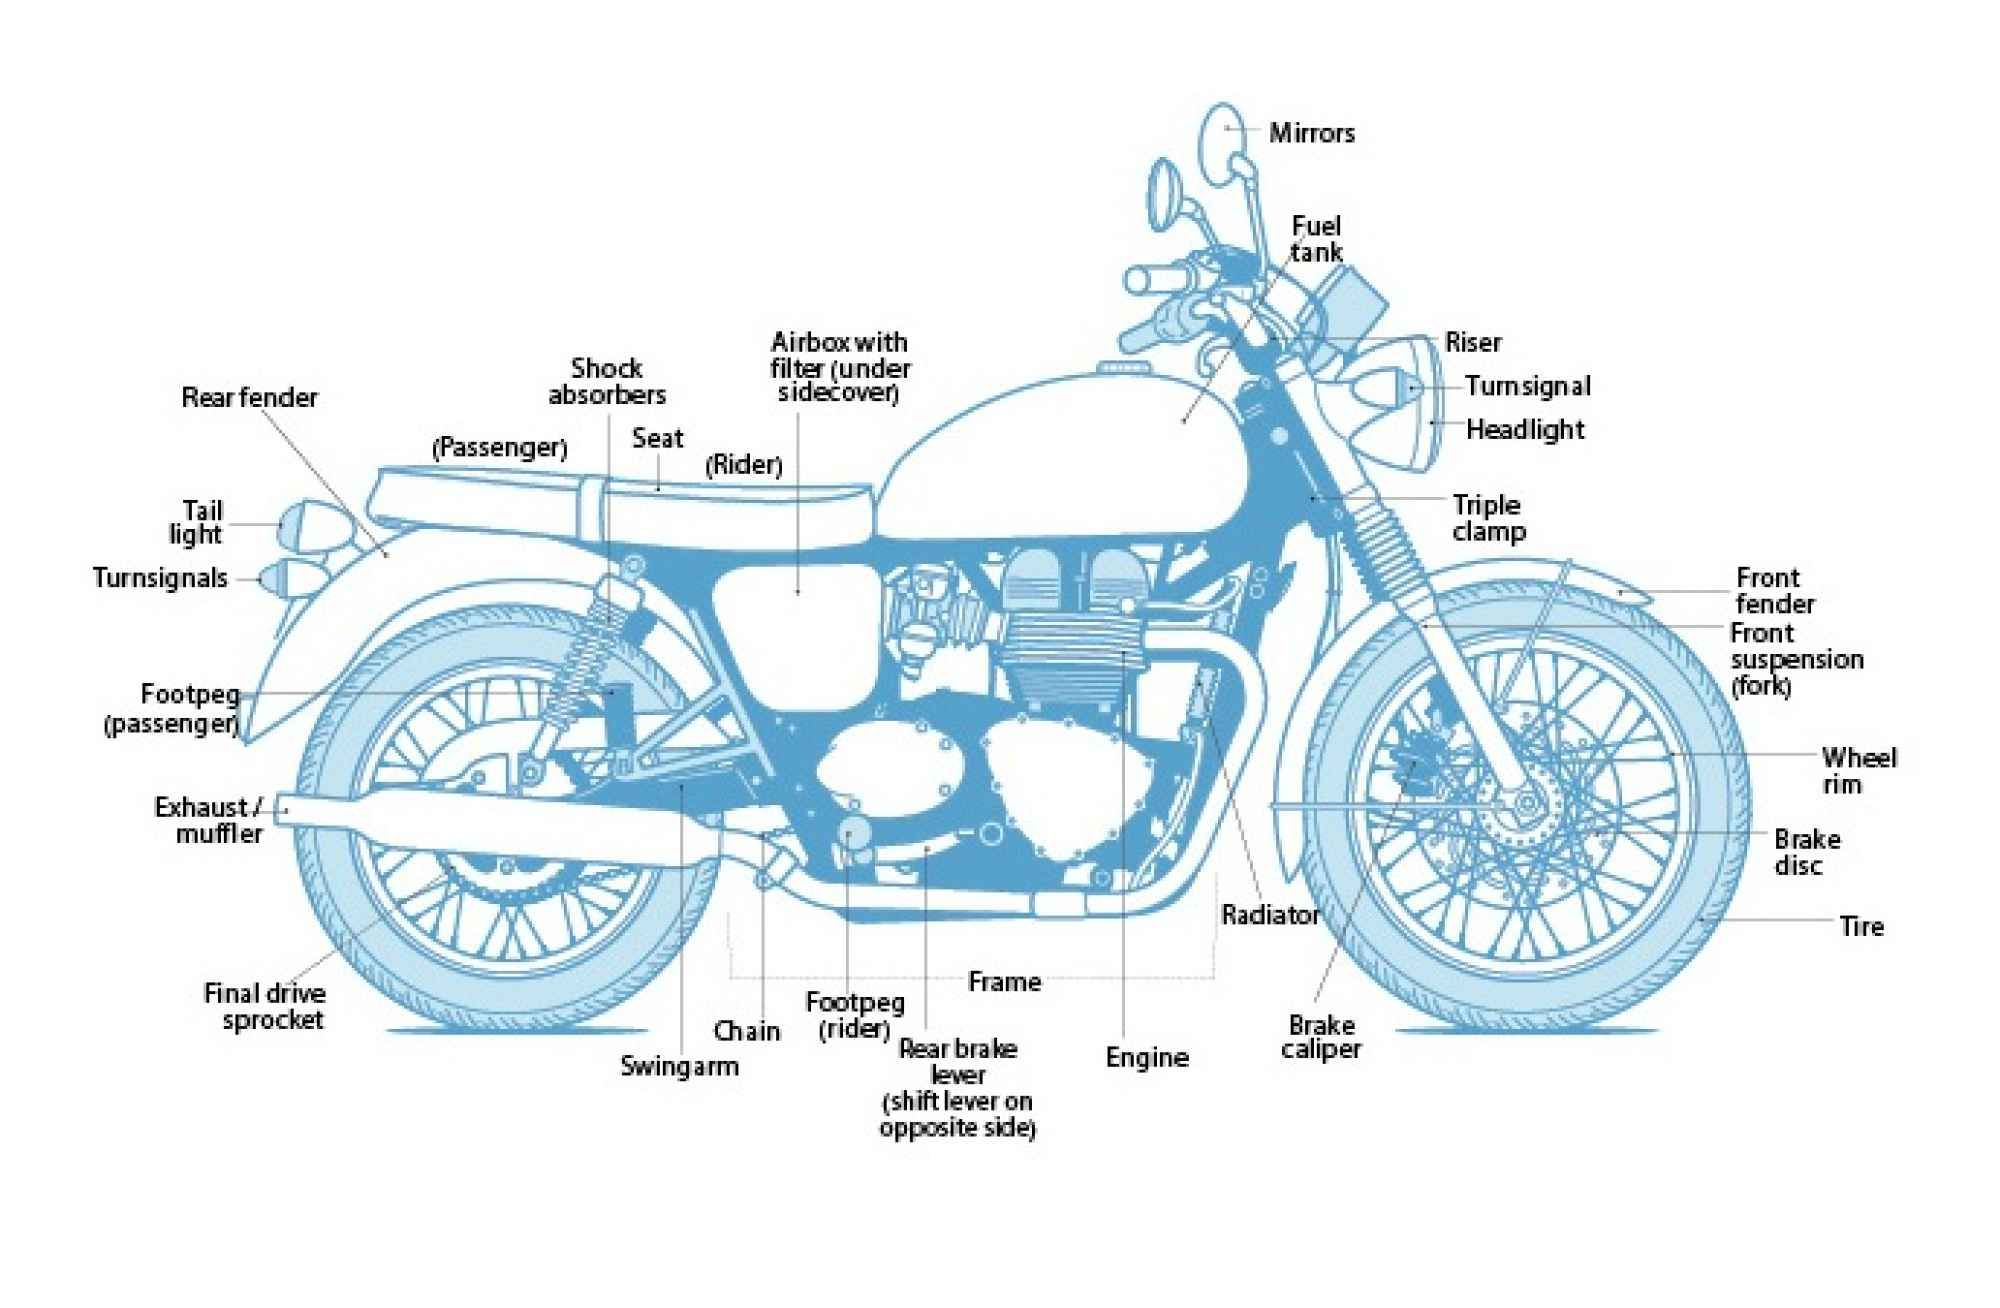 hight resolution of motorcycle diagram motorcycles cafe racer bikes motorcycle harley davidson motorcycle engine diagram harley davidson motorcycle diagrams